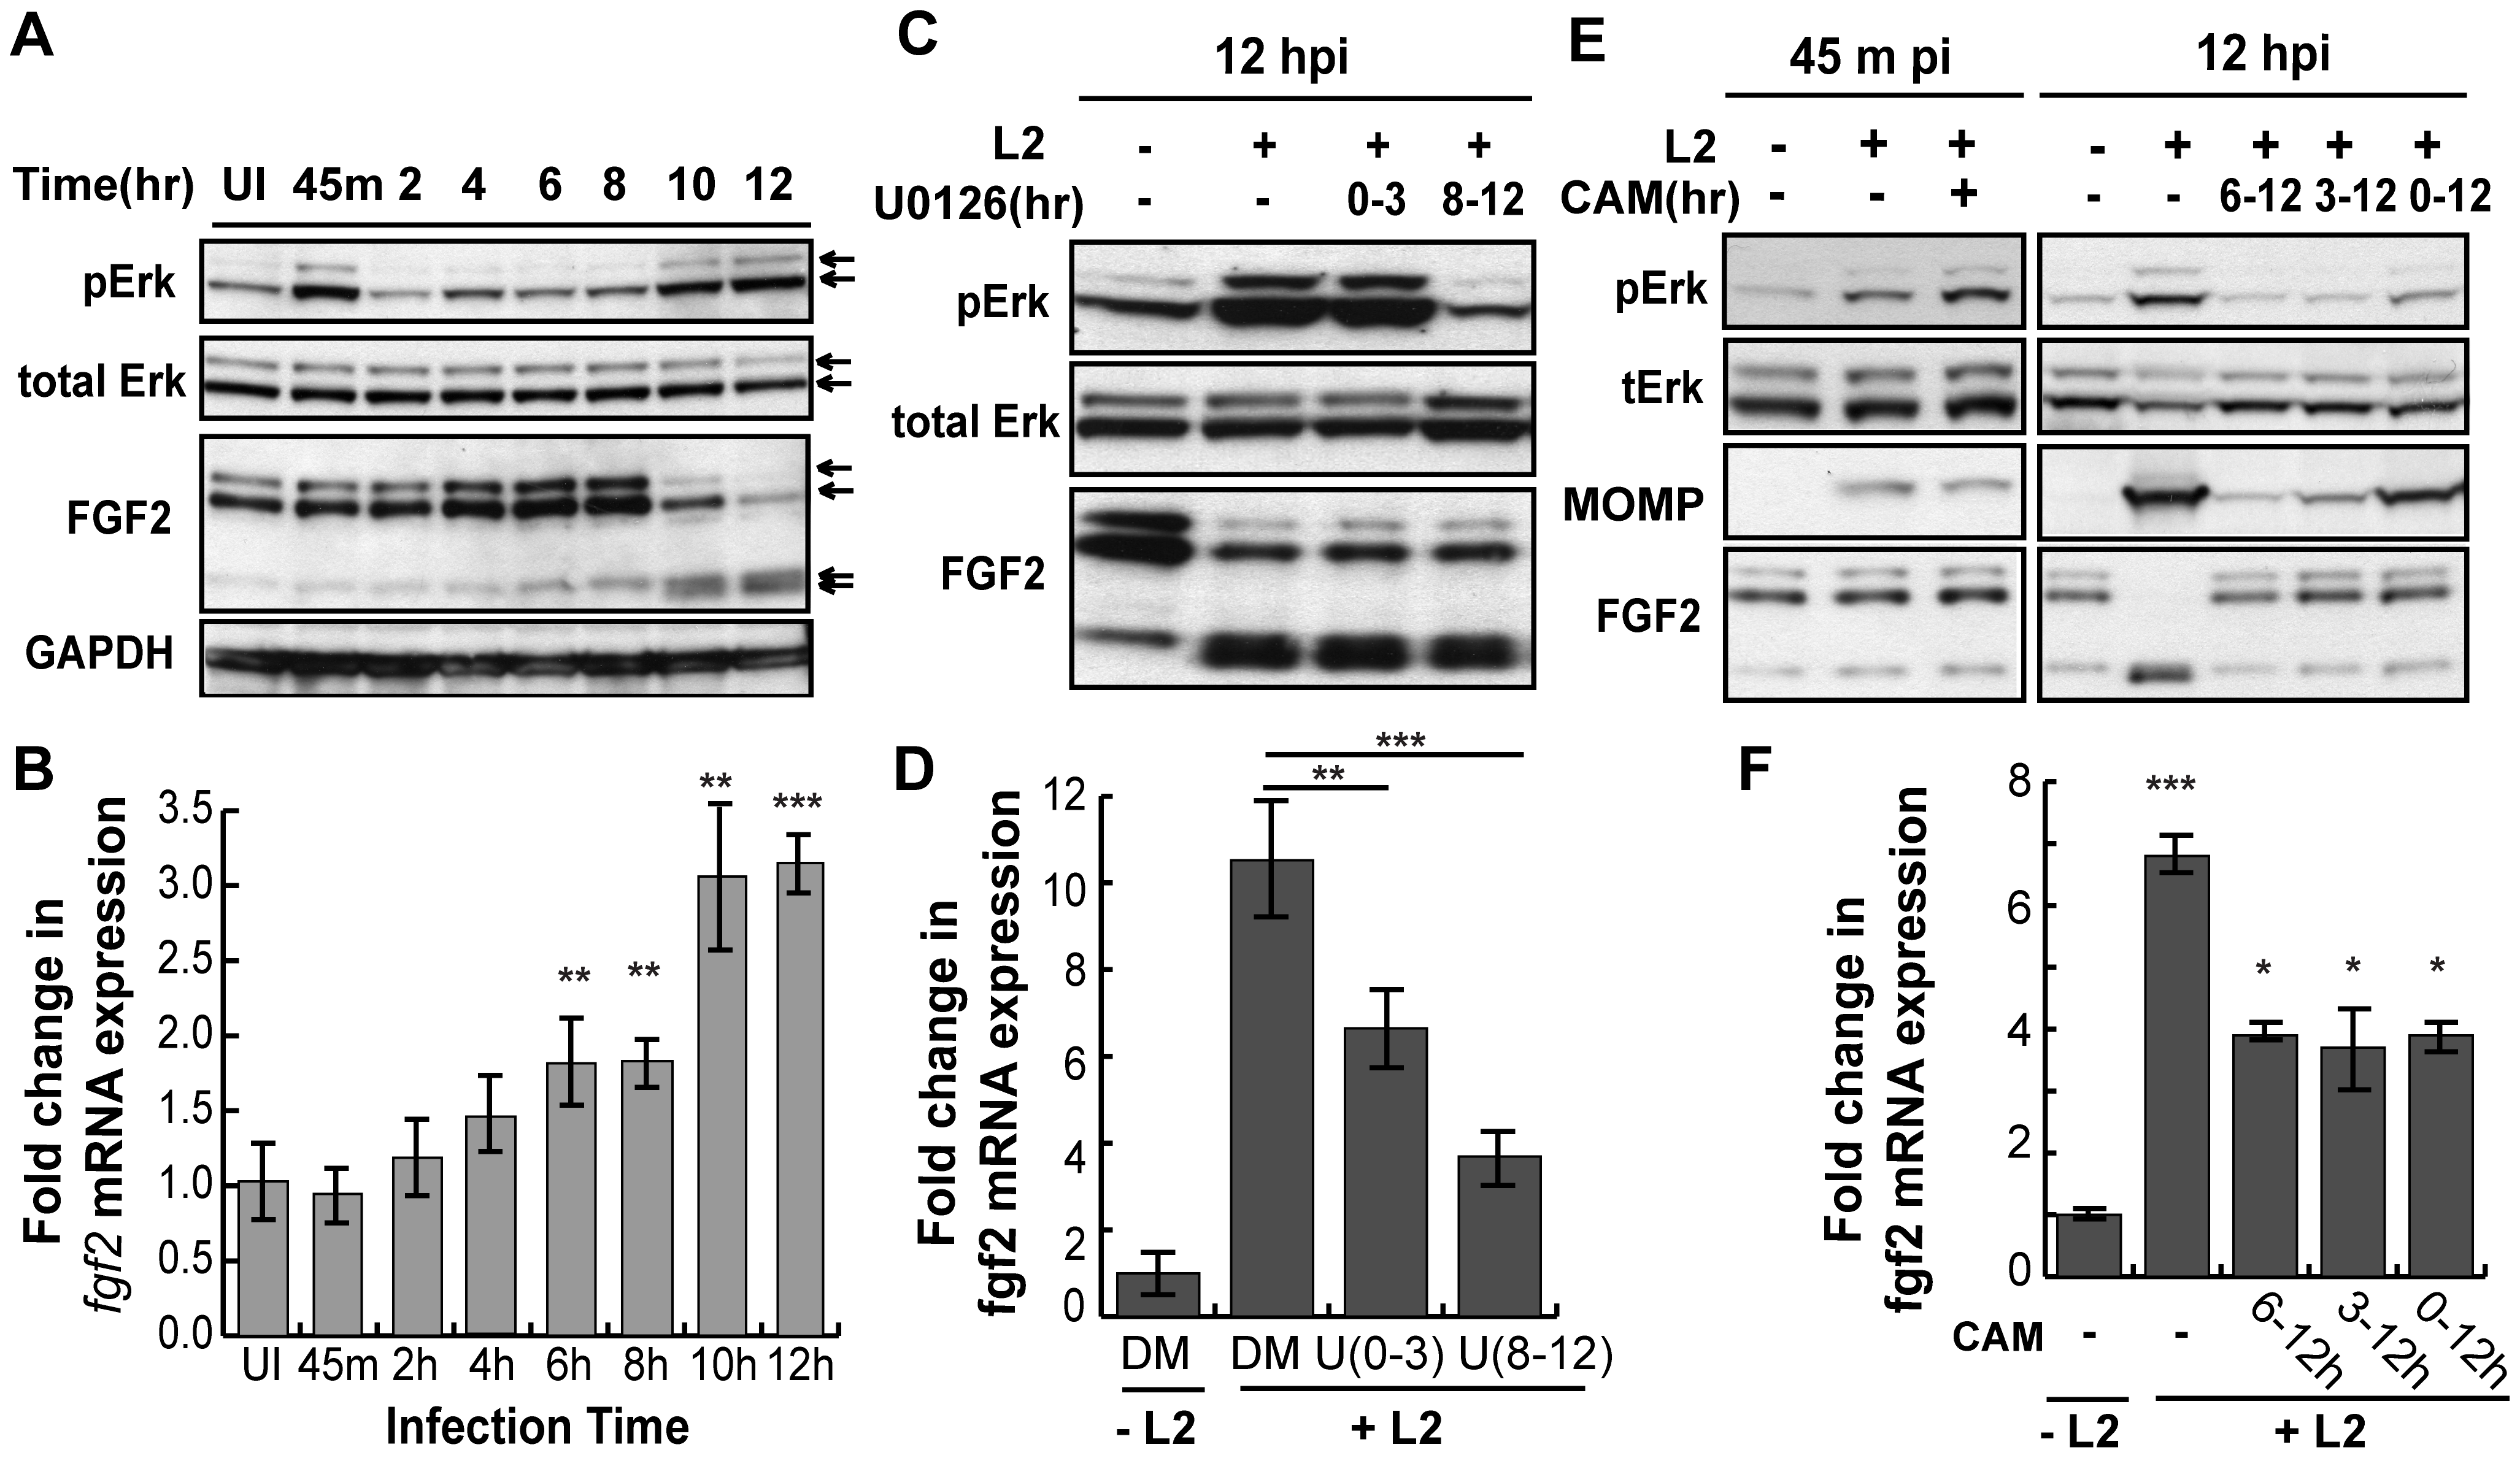 <i>C. trachomatis</i> L2 induces a biphasic activation of Erk1/2 which contributes to the induction of <i>fgf2</i> mRNA expression.